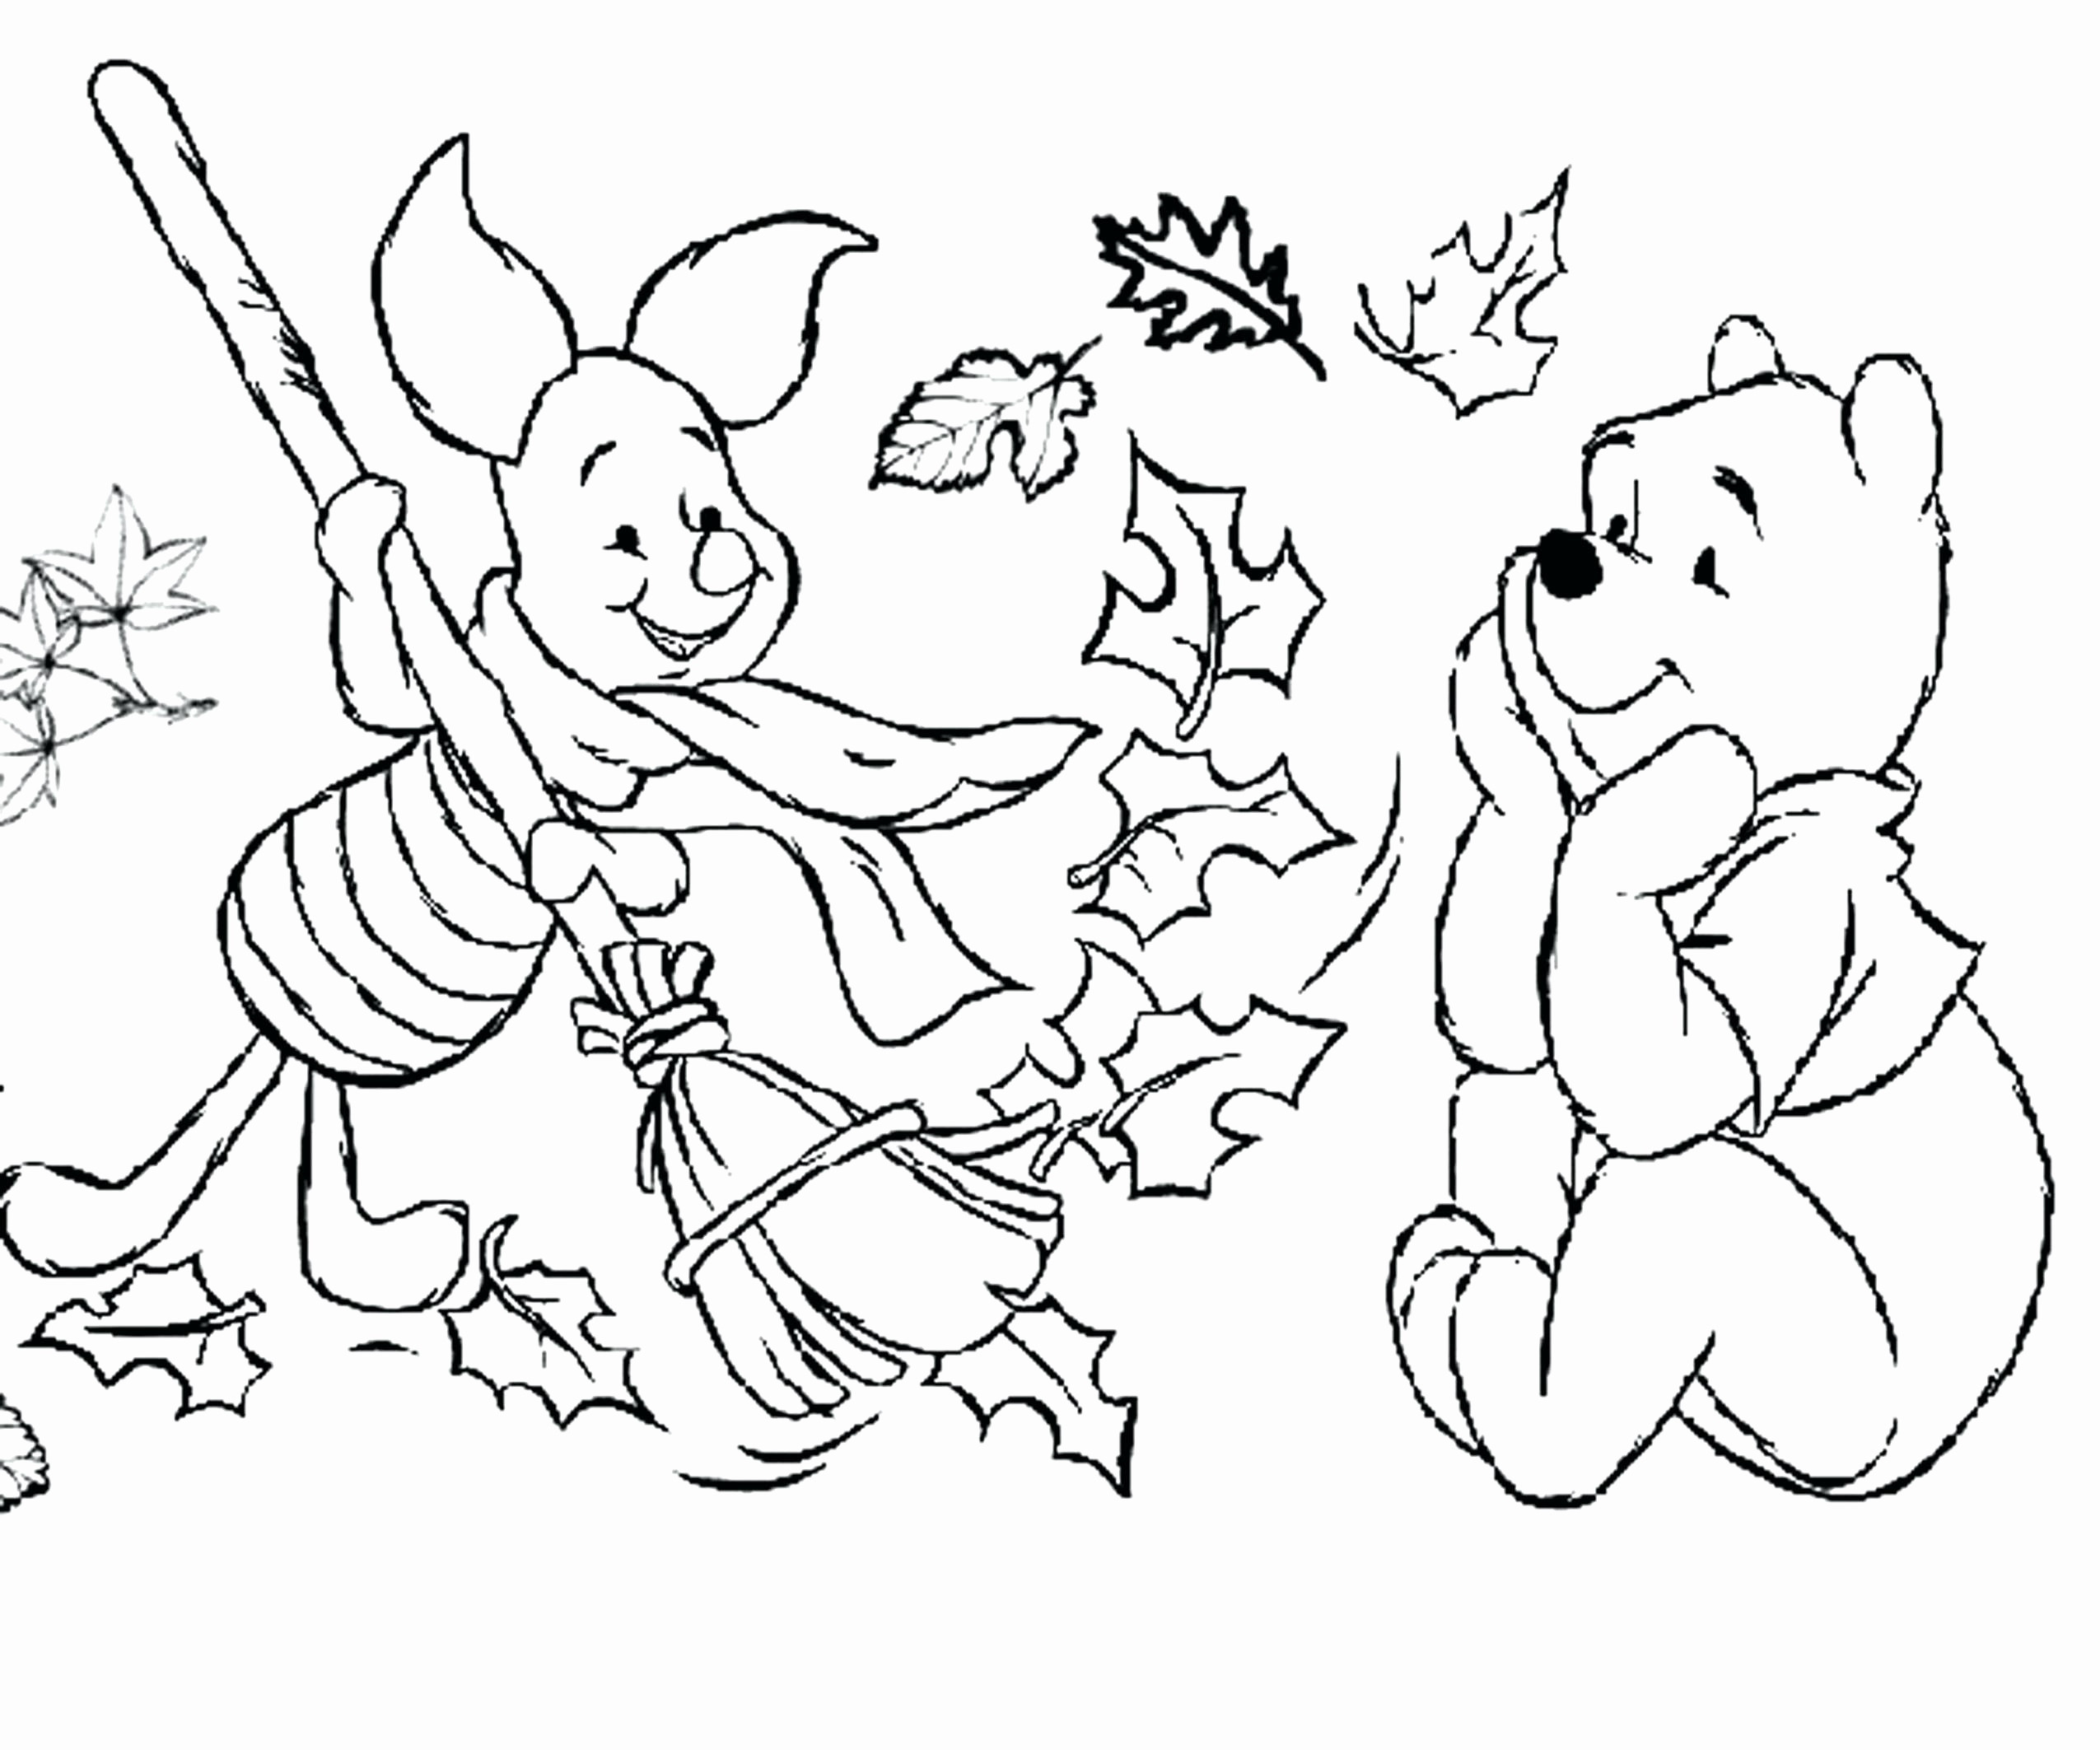 free childrens coloring pages Collection-Kids Color Pages Batman Coloring Pages Games New Fall Coloring Pages 0d Page for Kids 6-r